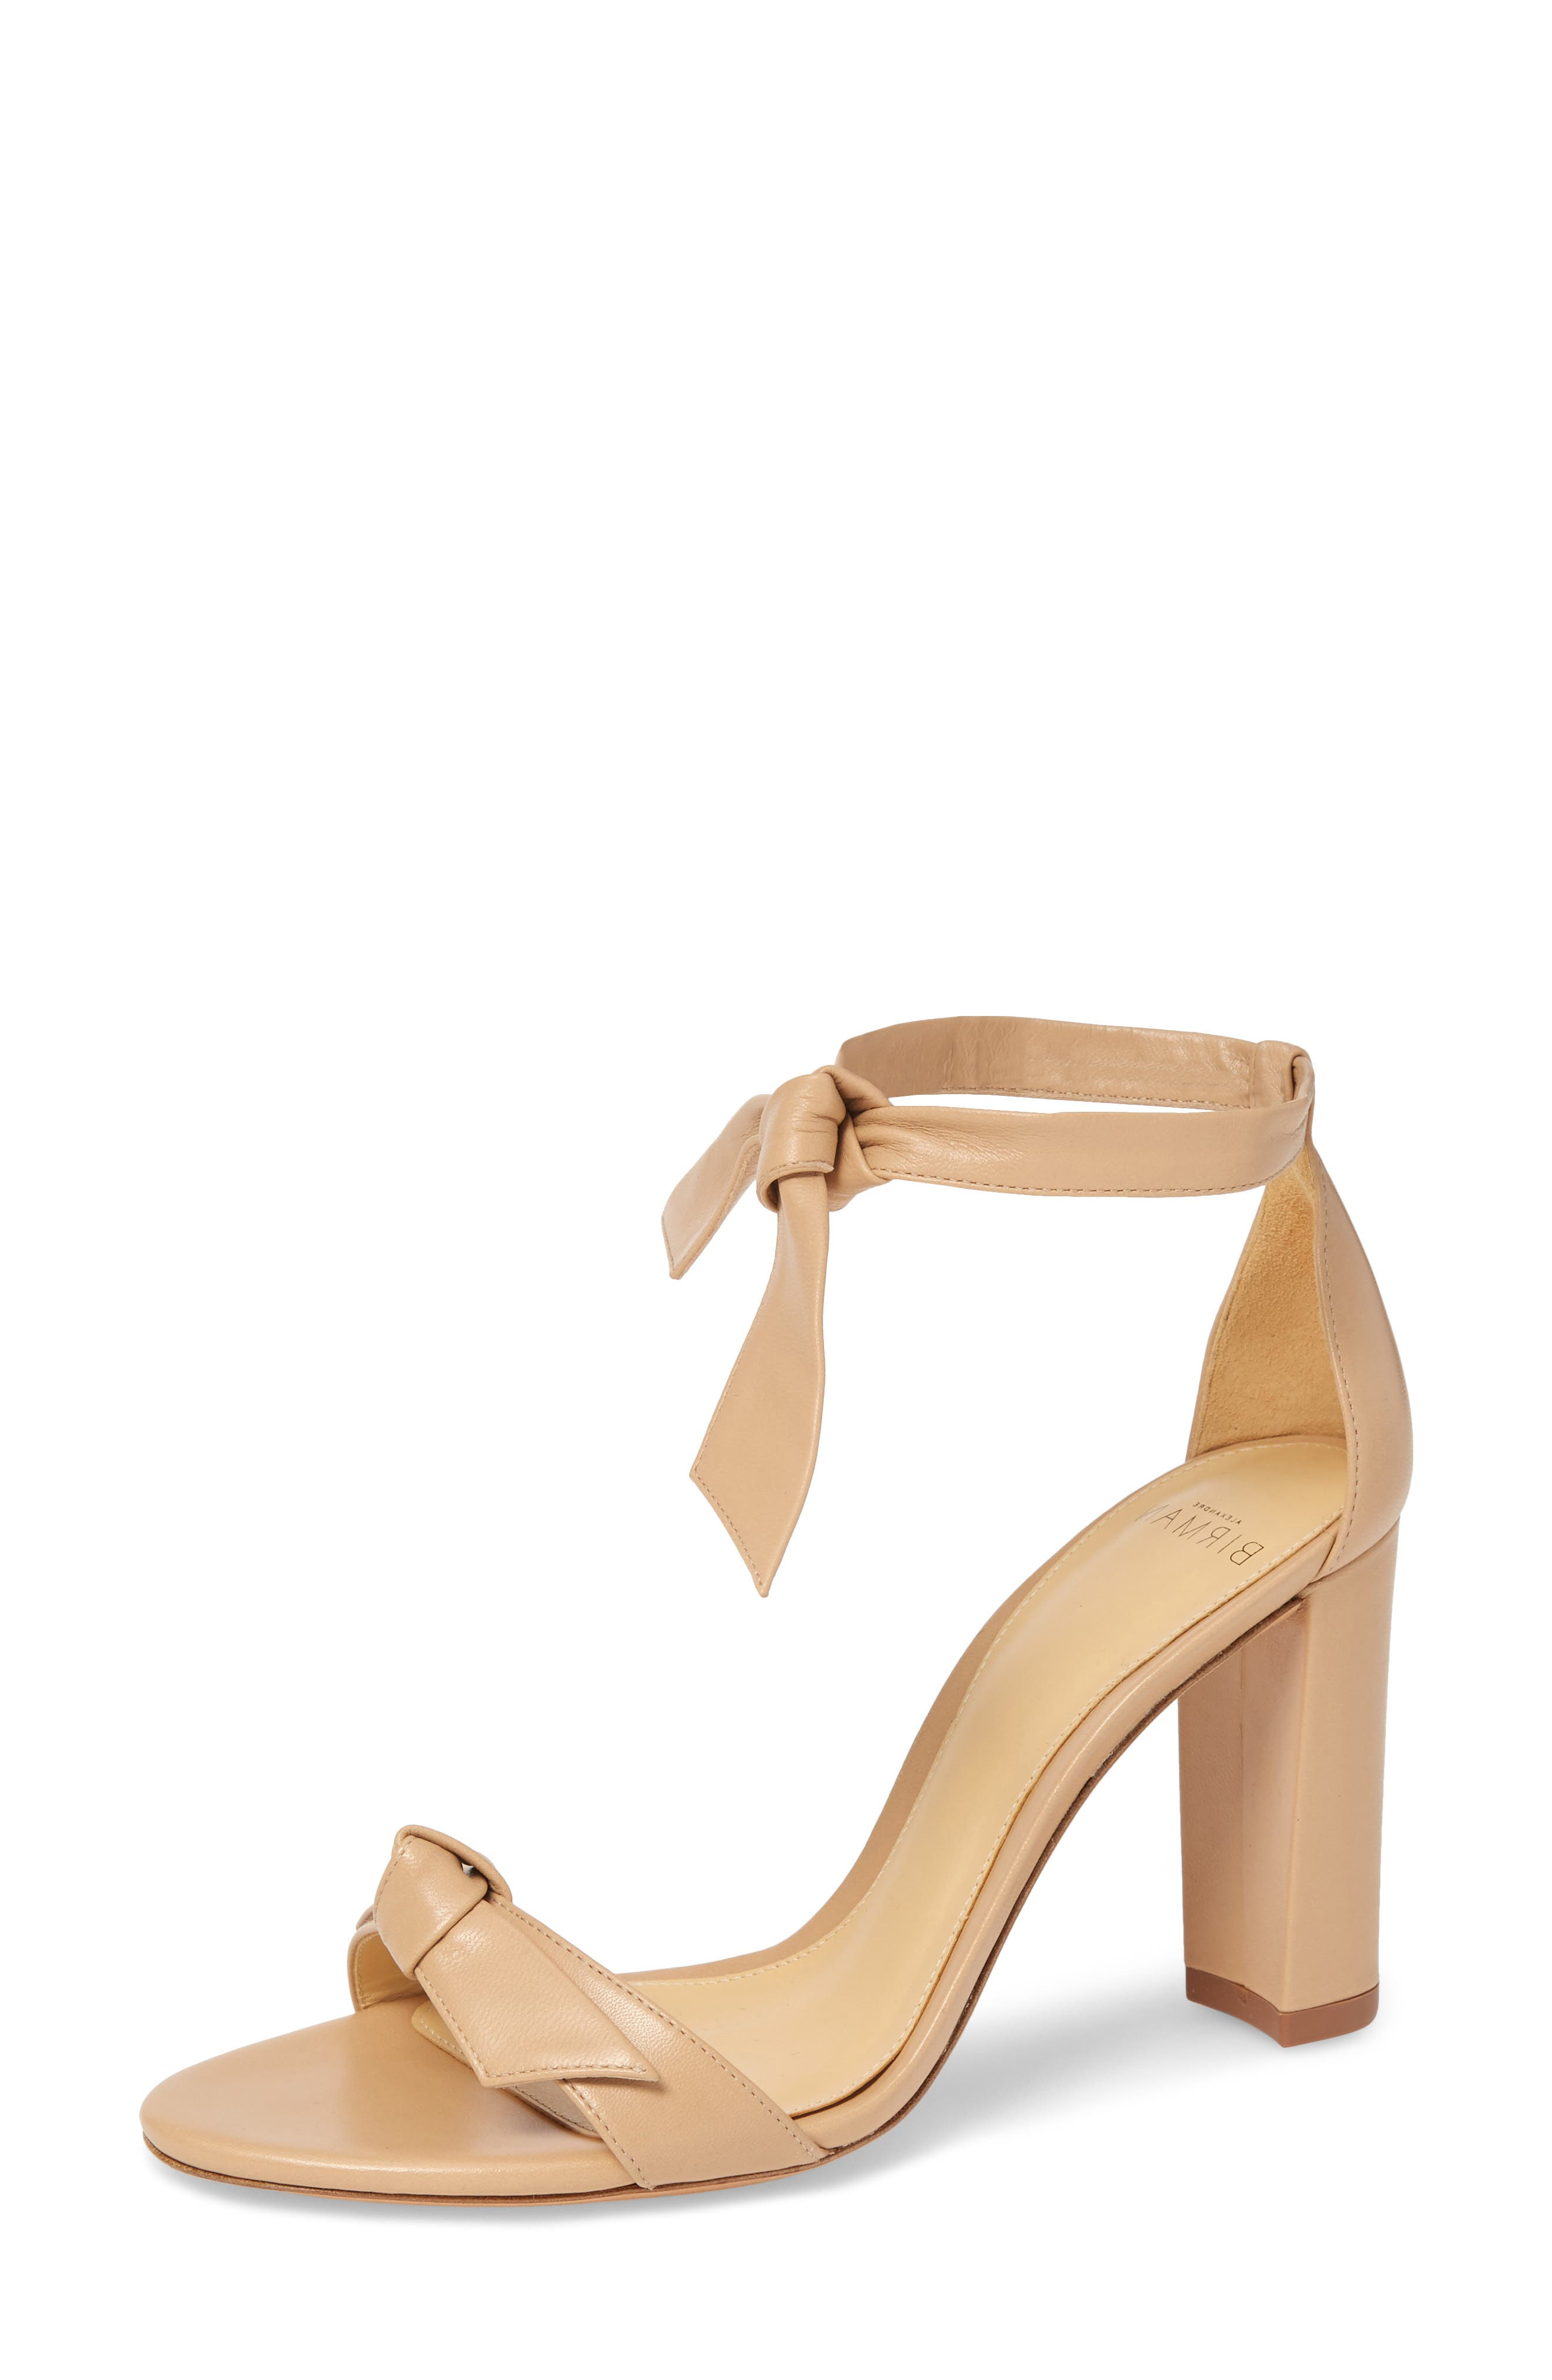 Clarita Knotted Sandal,                         Main,                         color, NUDE LEATHER